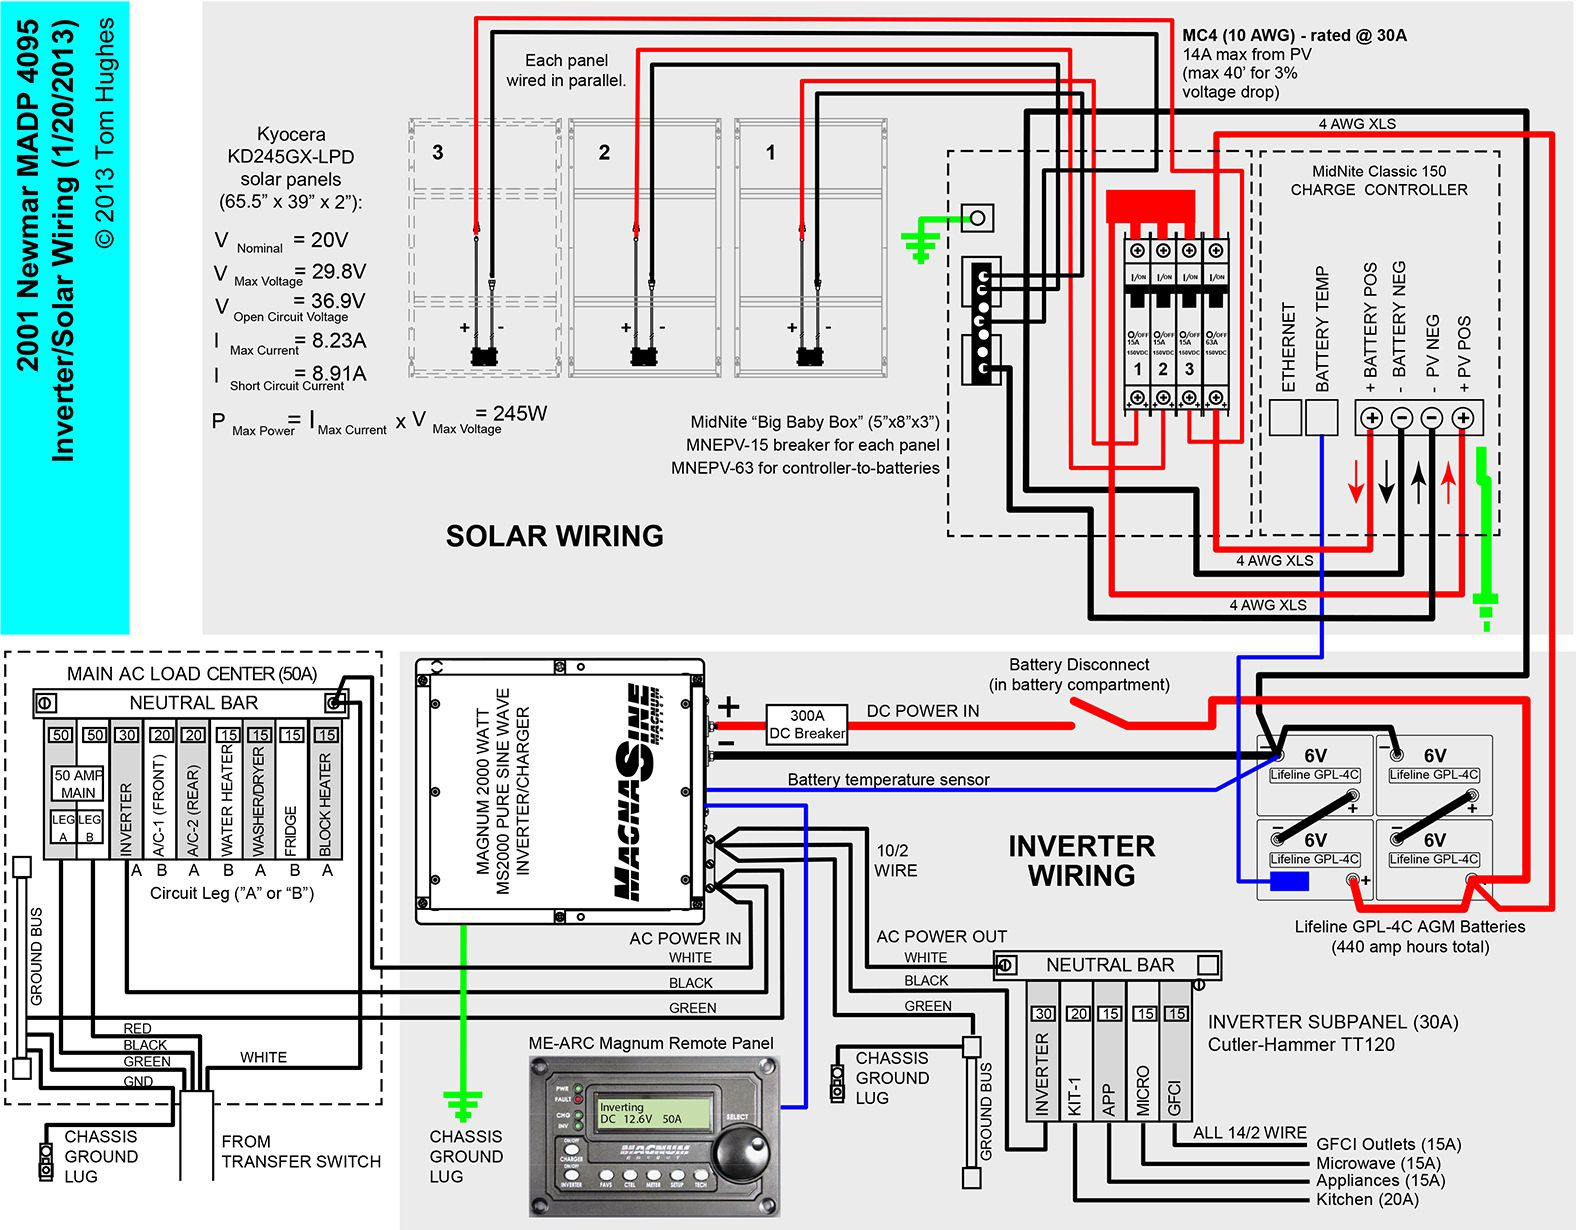 Travel Trailer Wiring Diagram : Rv inverter wiring diagram